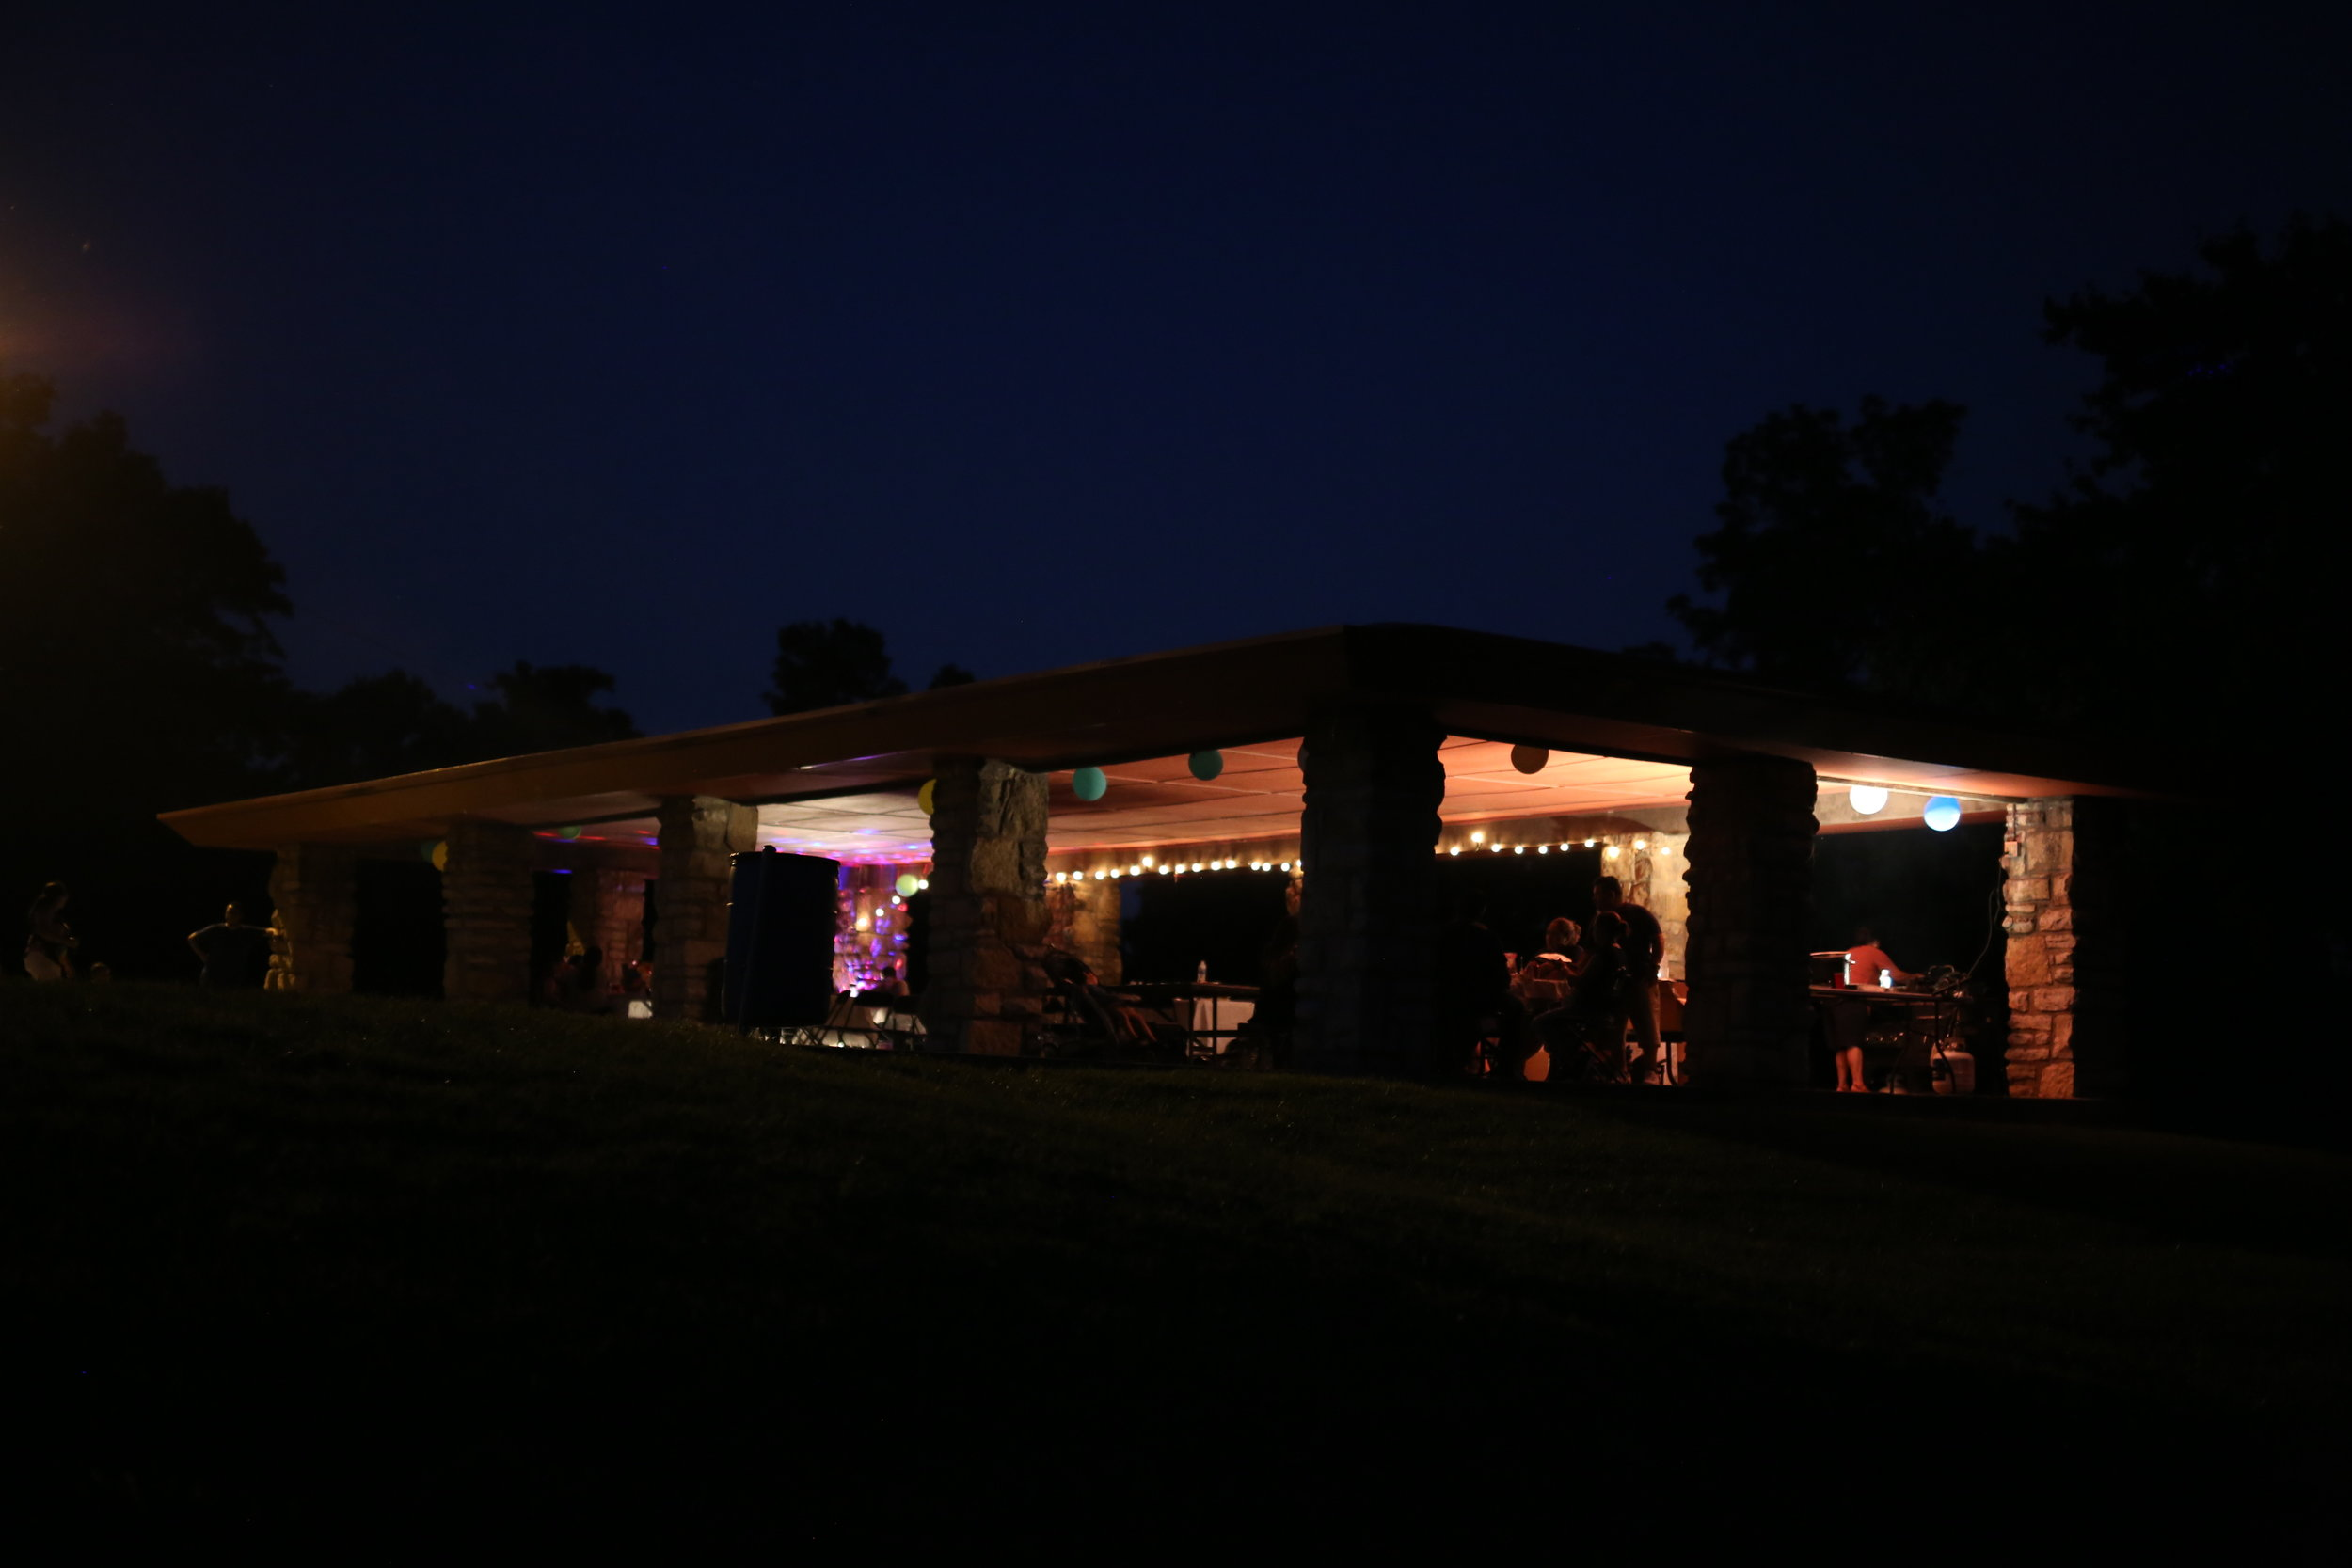 By bringing their own lights to the shelter, the park visitors made the space their own, even after dark.